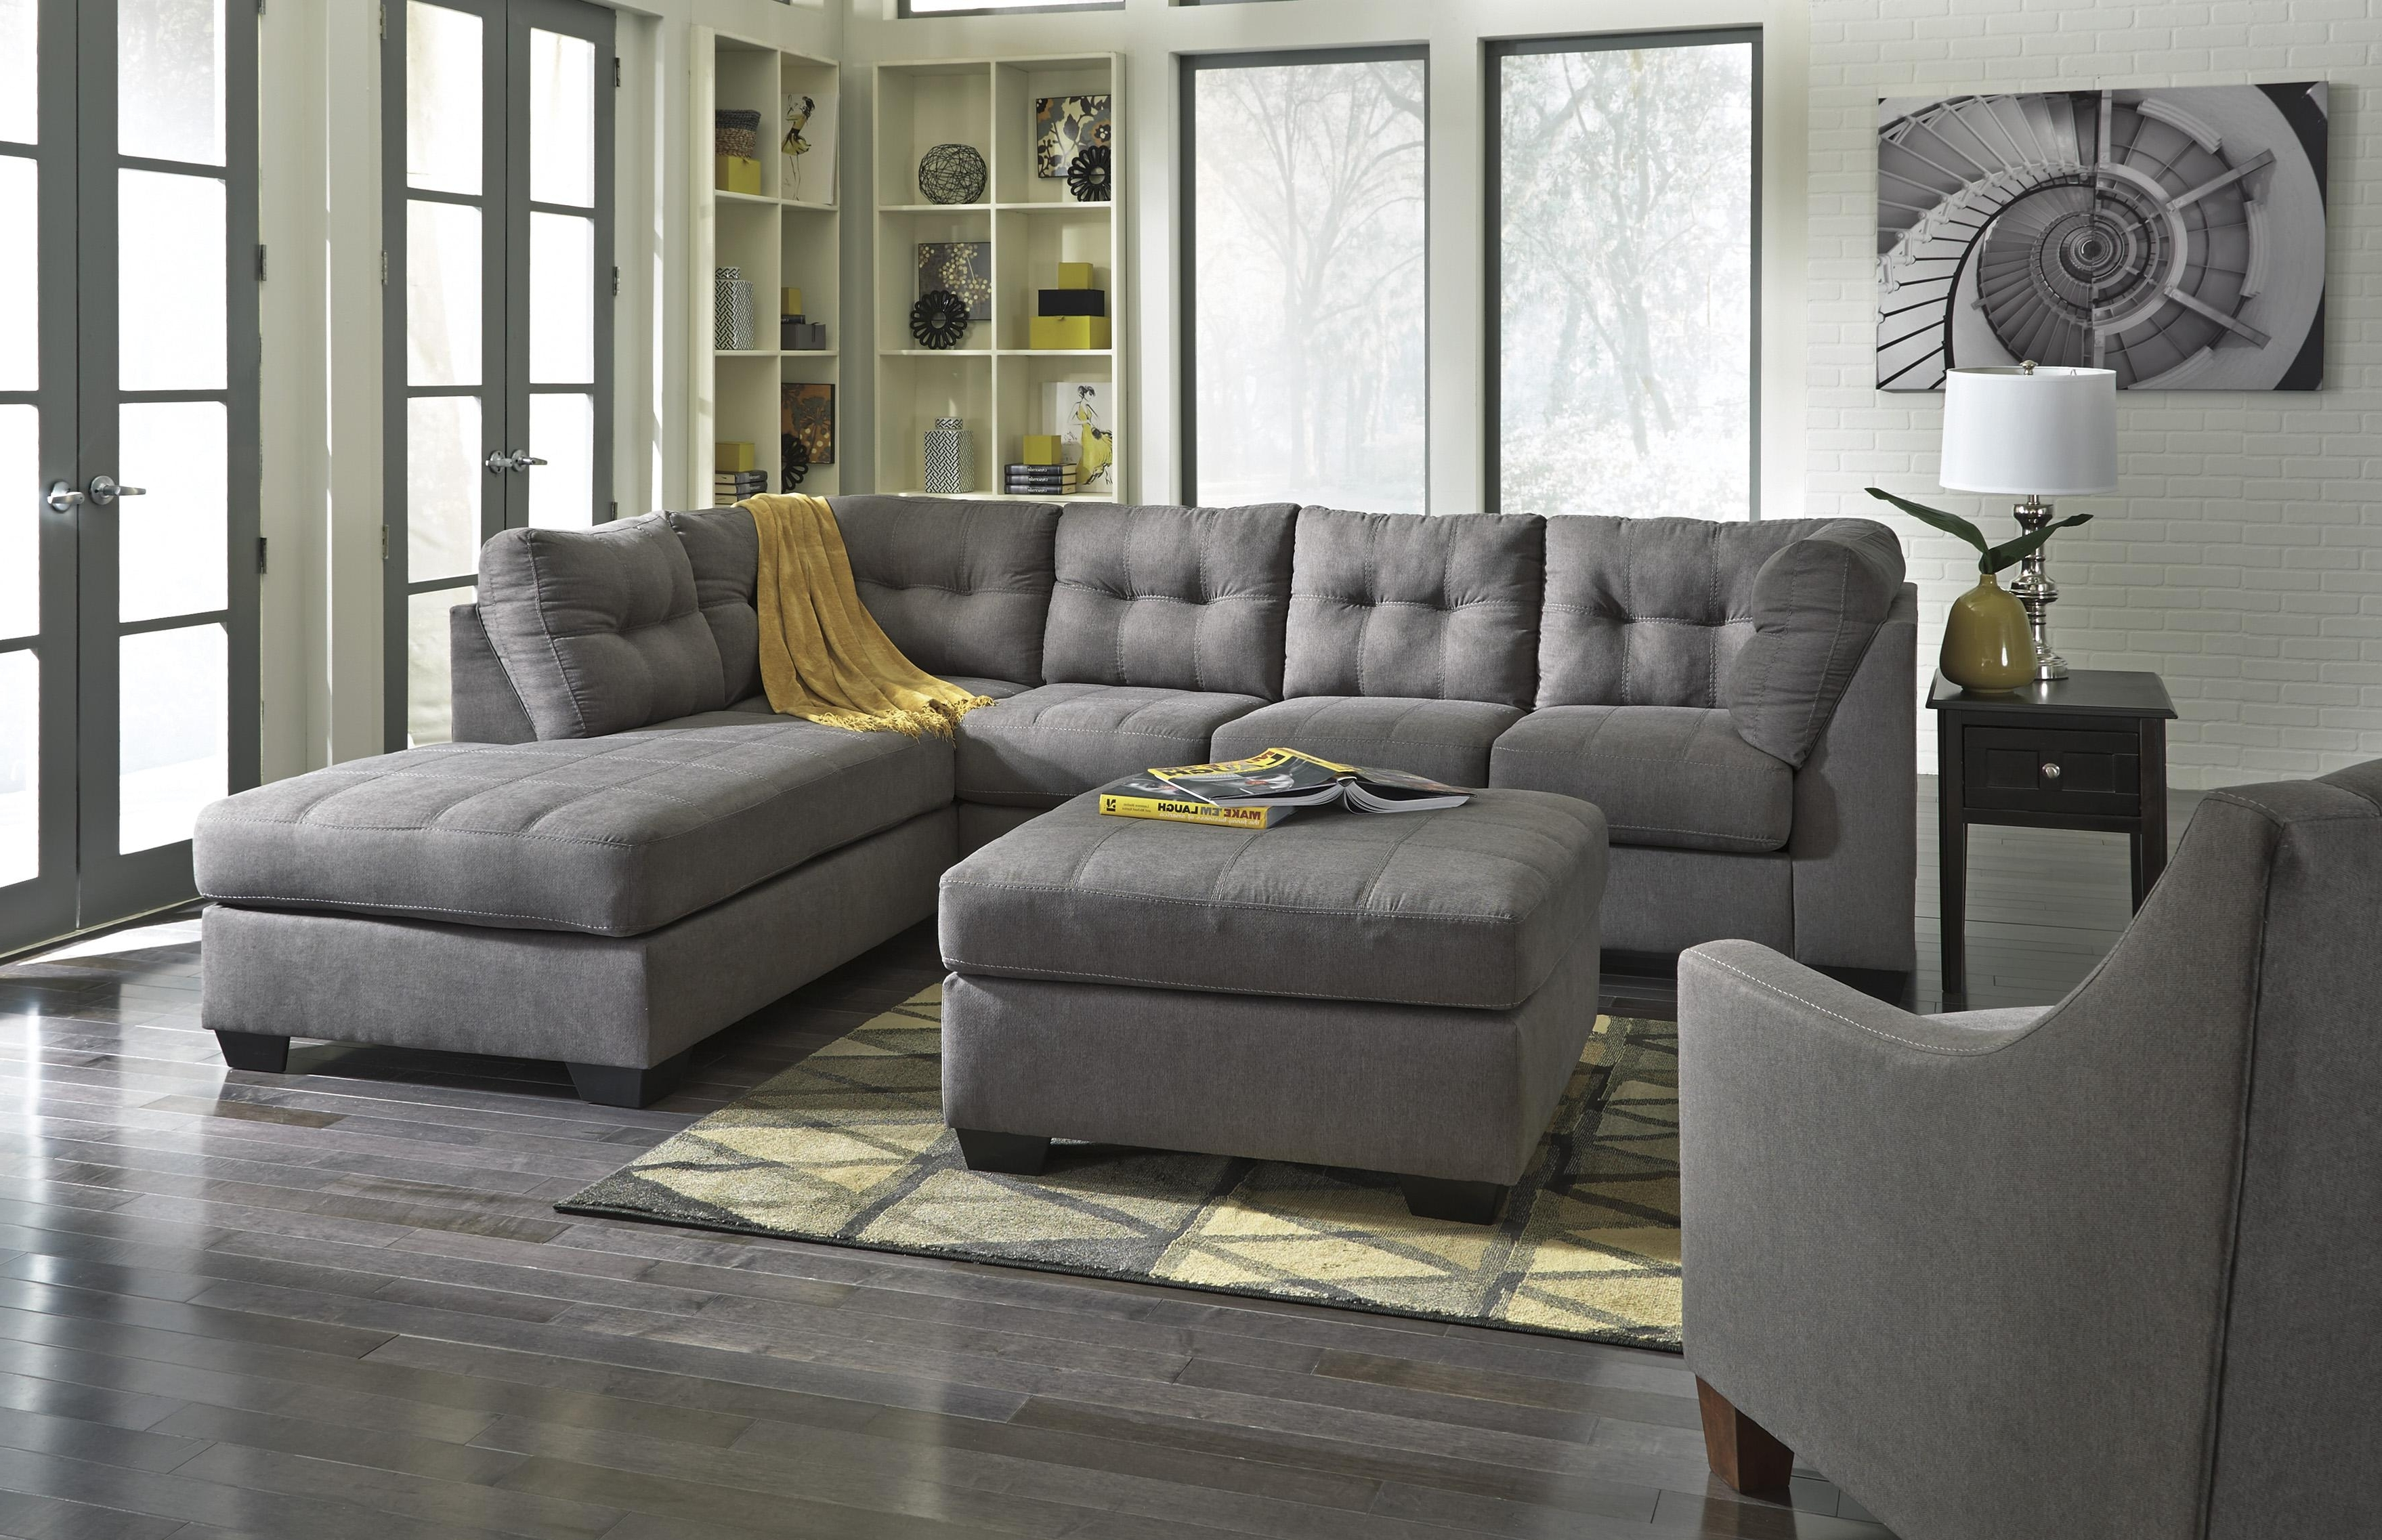 Furniture : Sectional Chaise Lounge Sofa Double Along With In Recent Sectionals With Chaise And Ottoman (View 5 of 15)